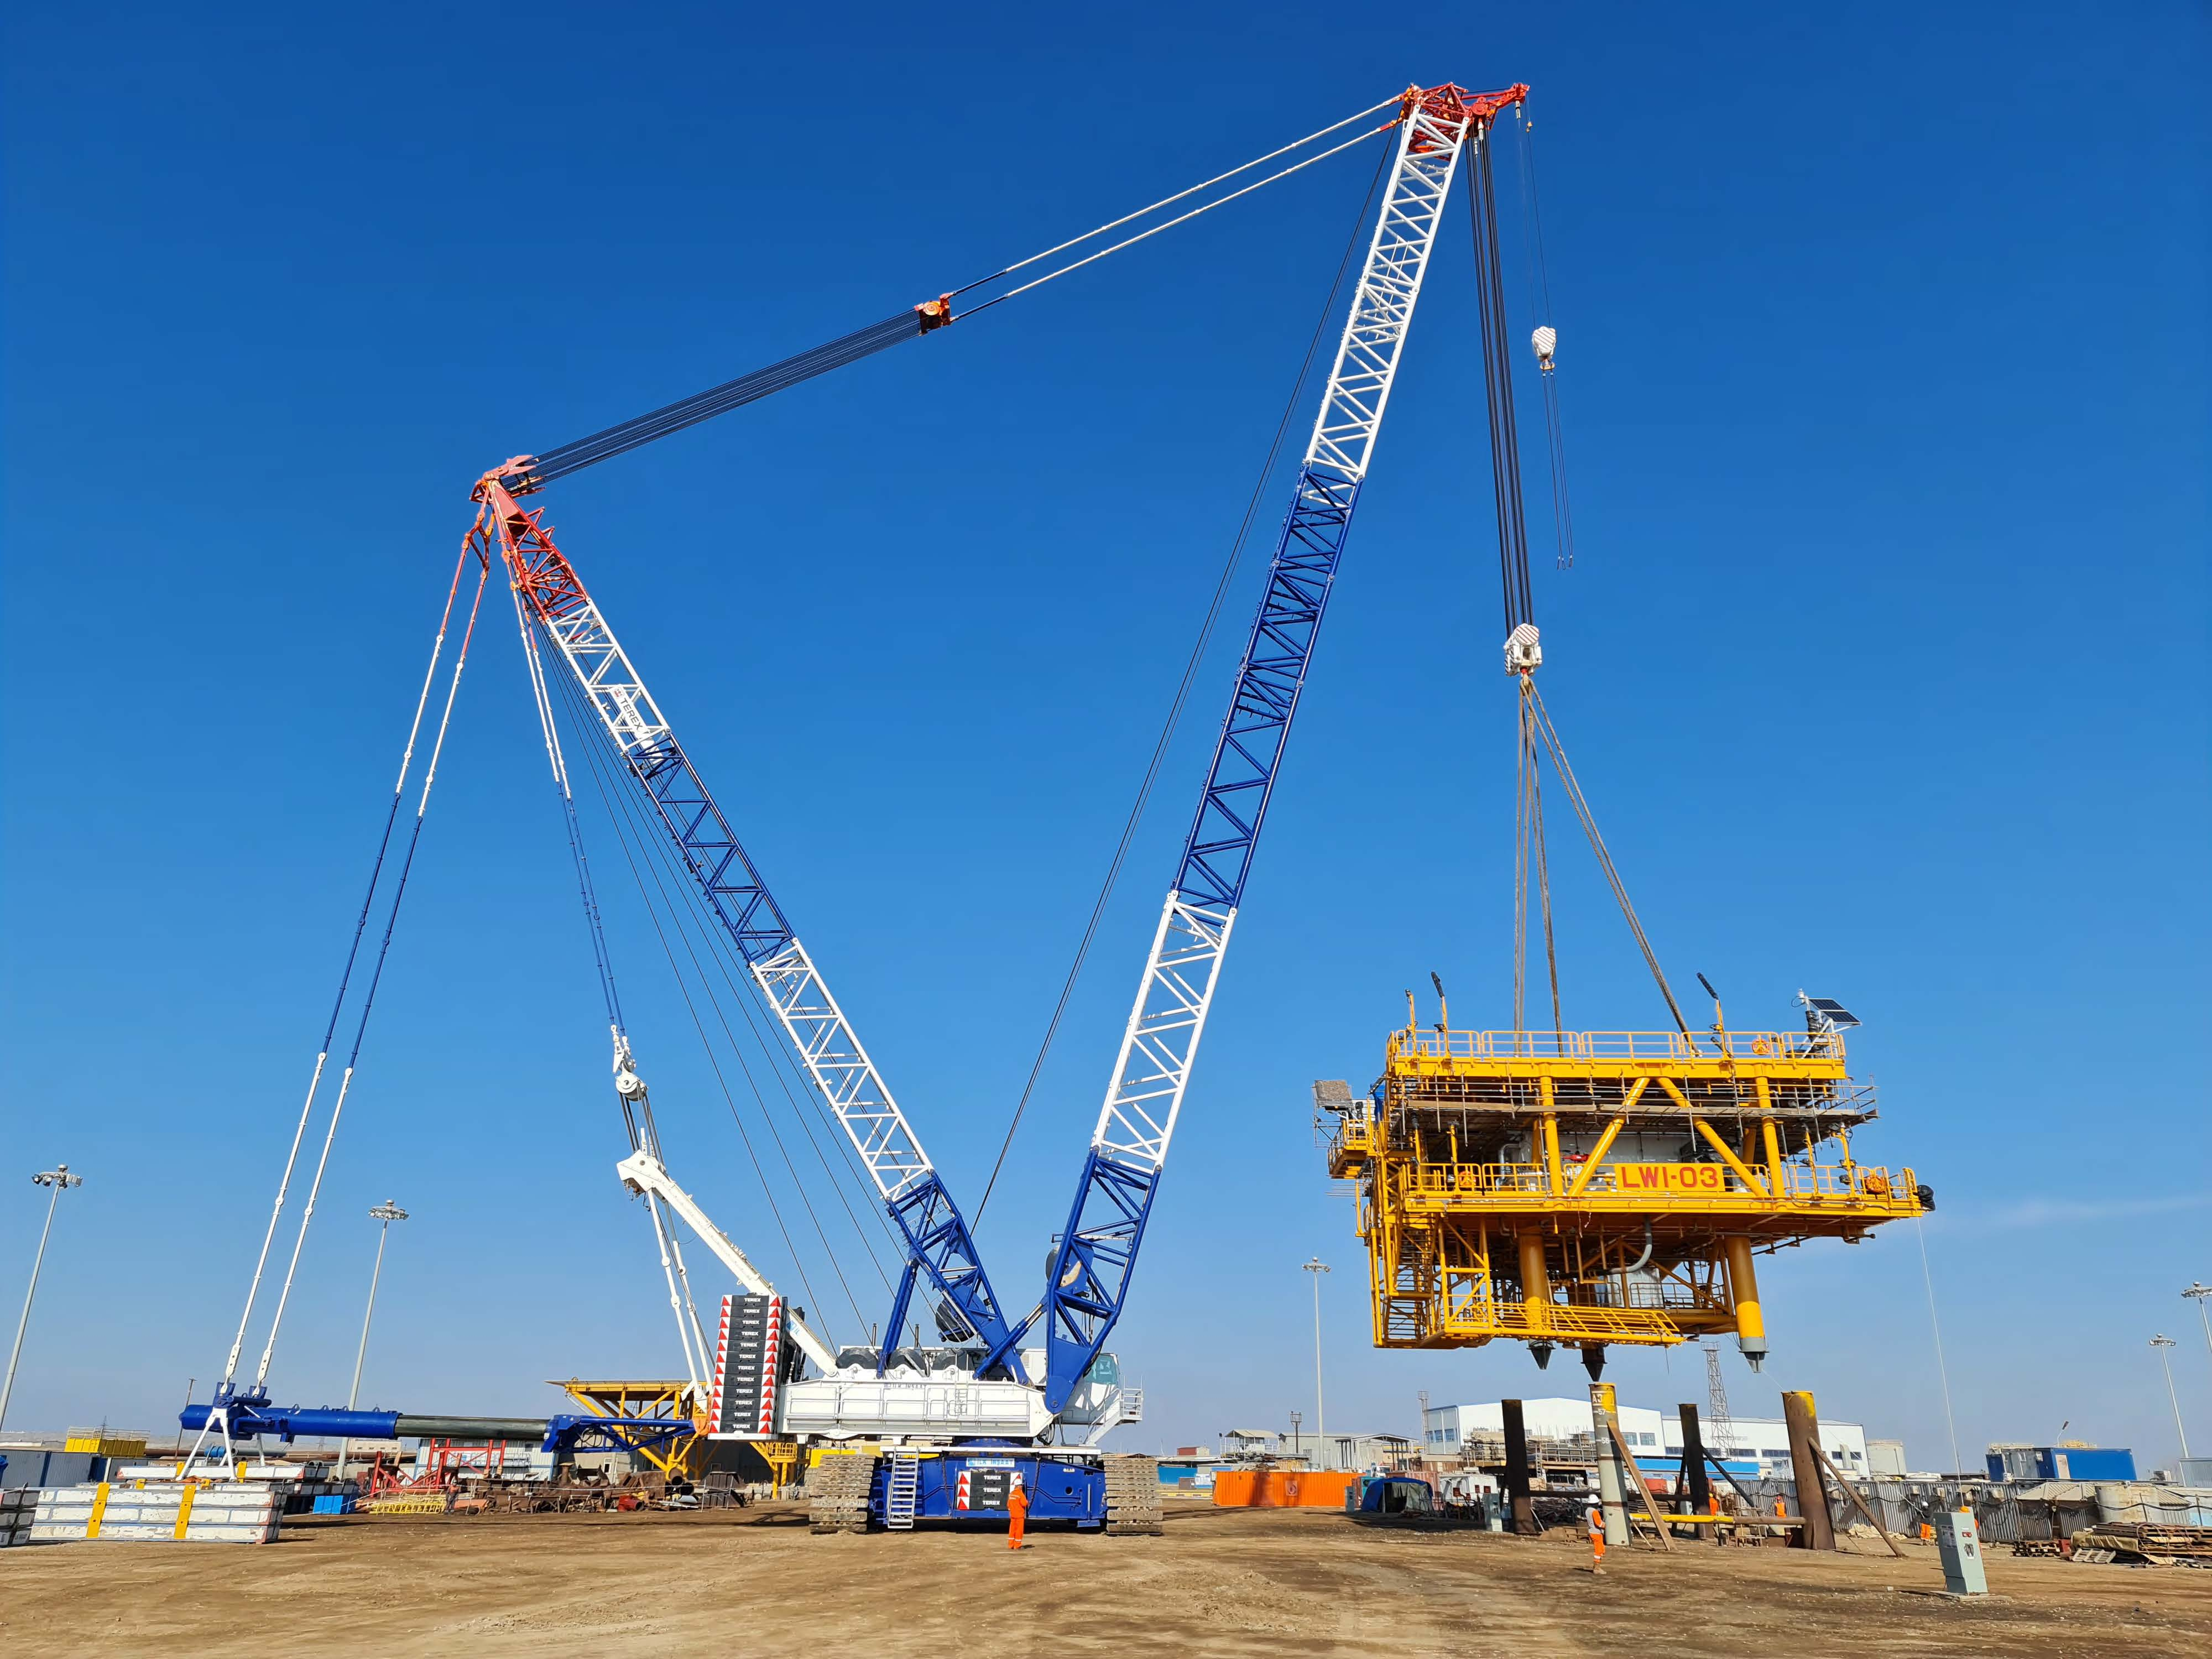 Three New Wellhead Towers & Associated Pipelines for Water Injection